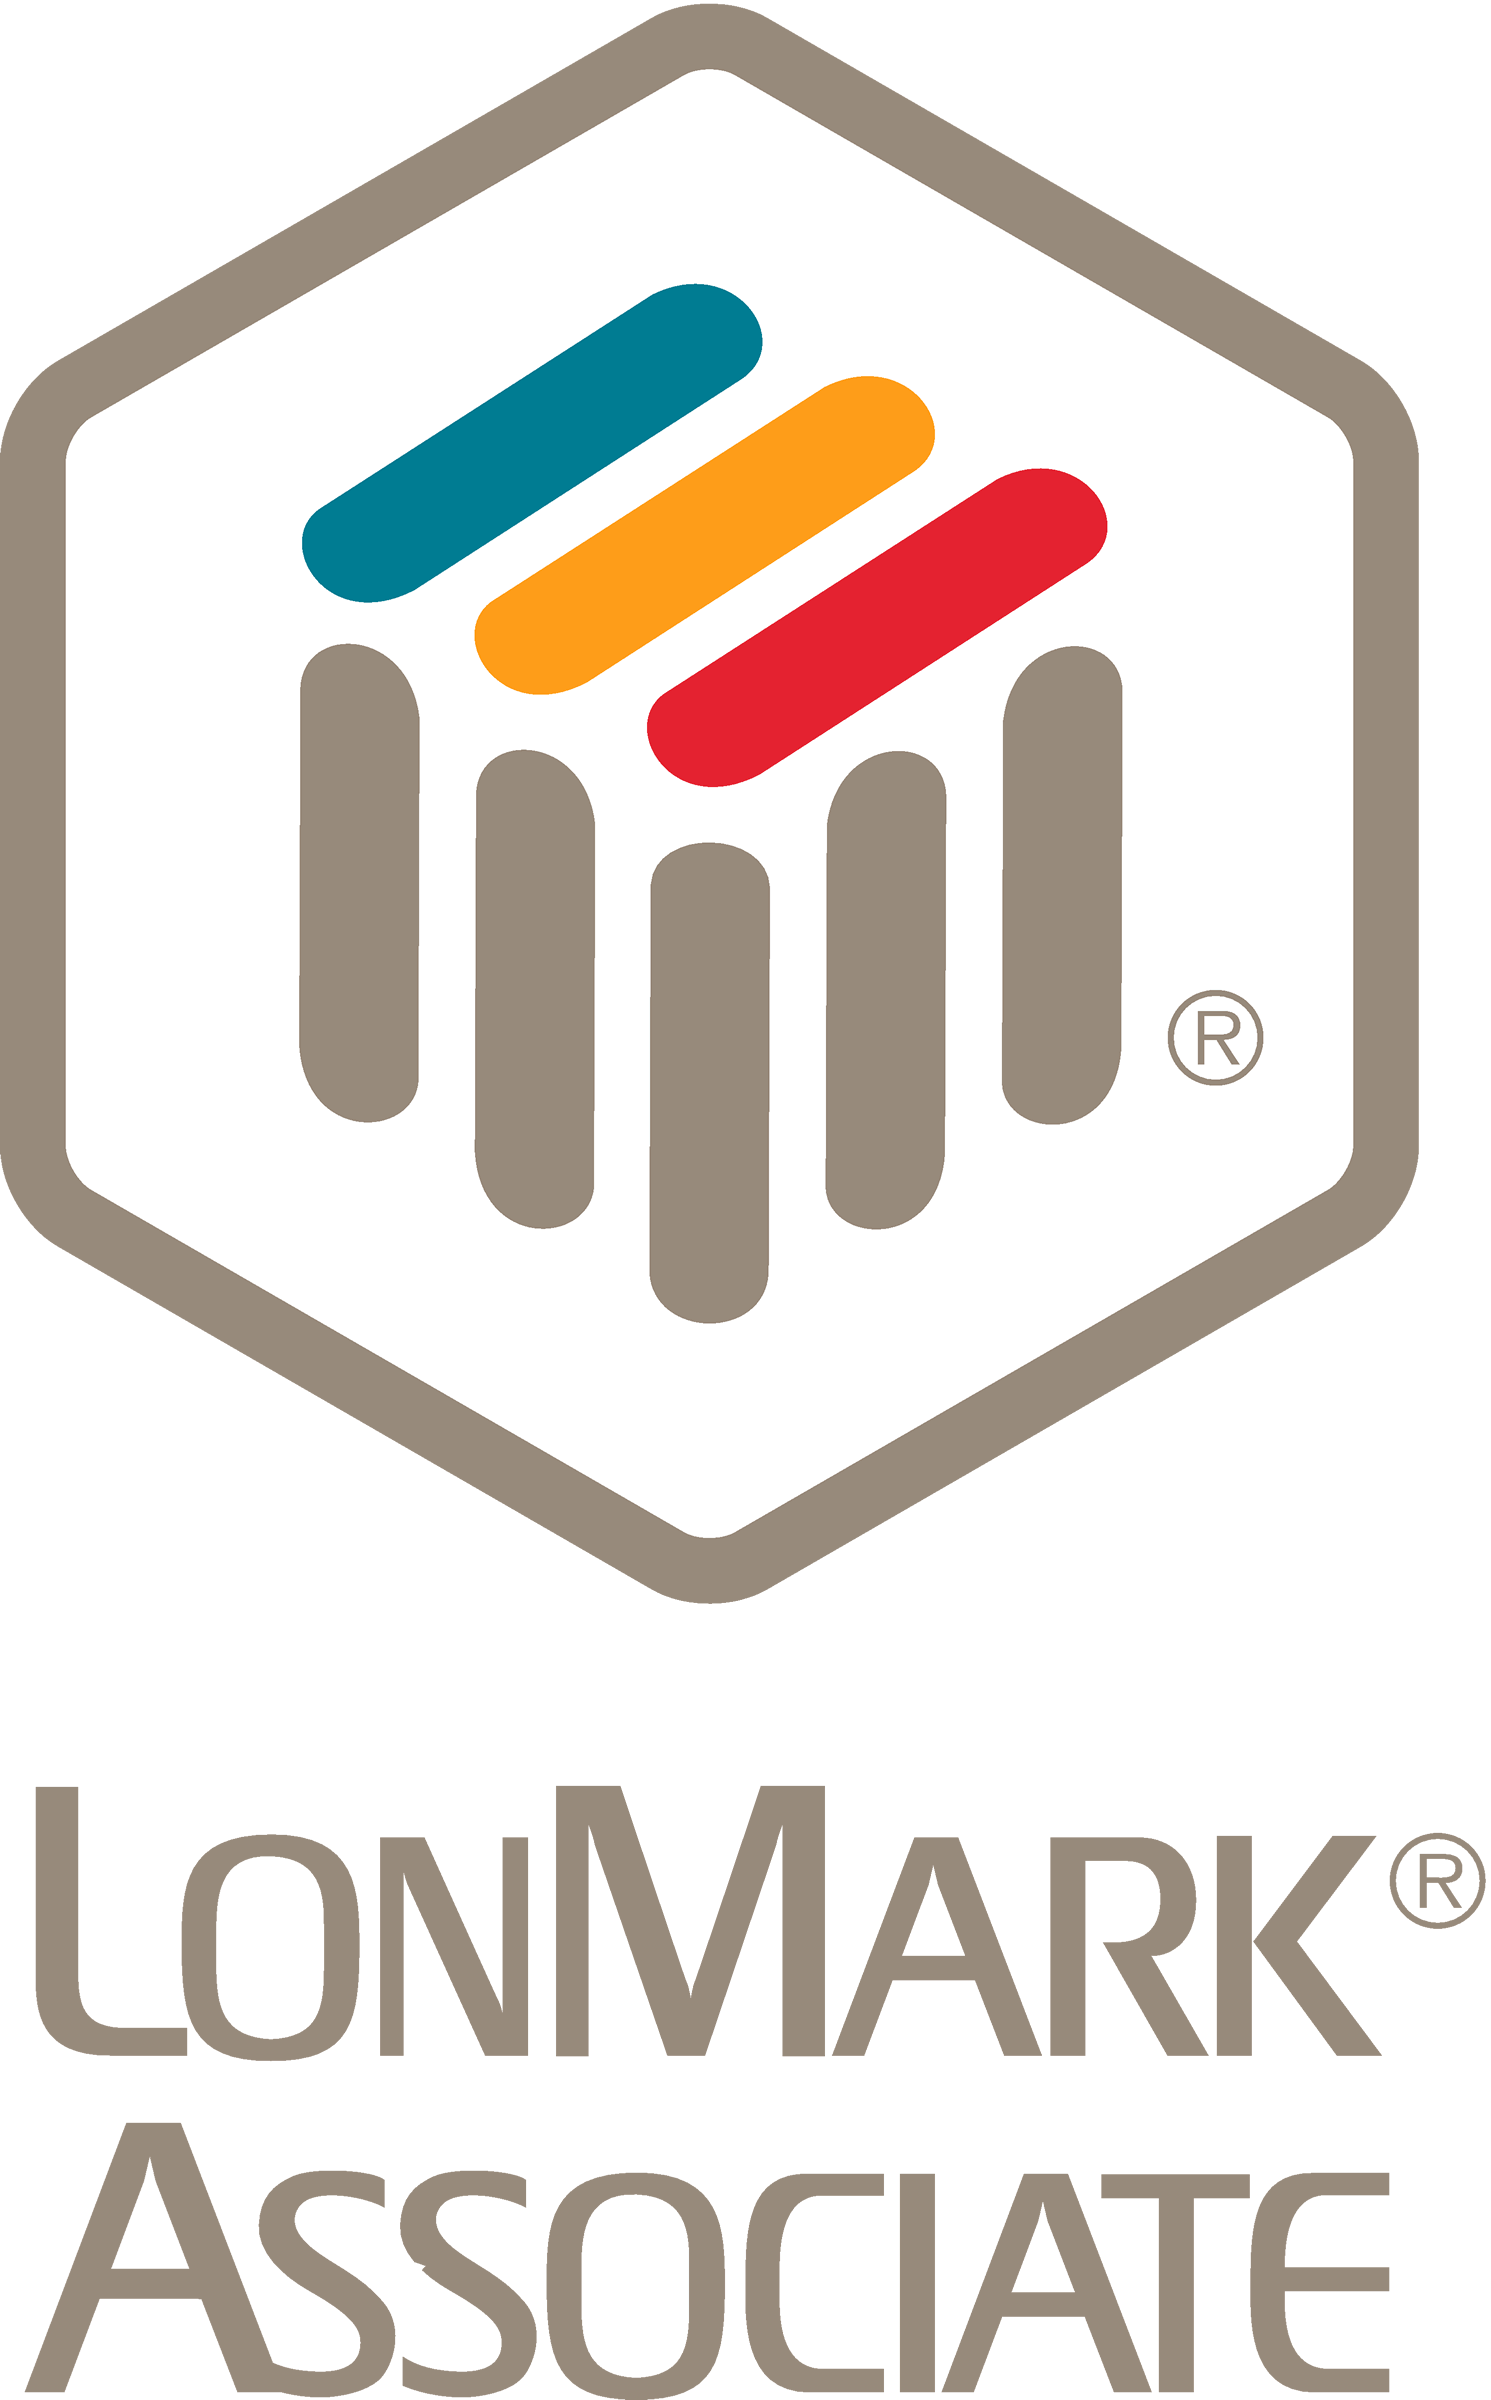 lonmark associate logo